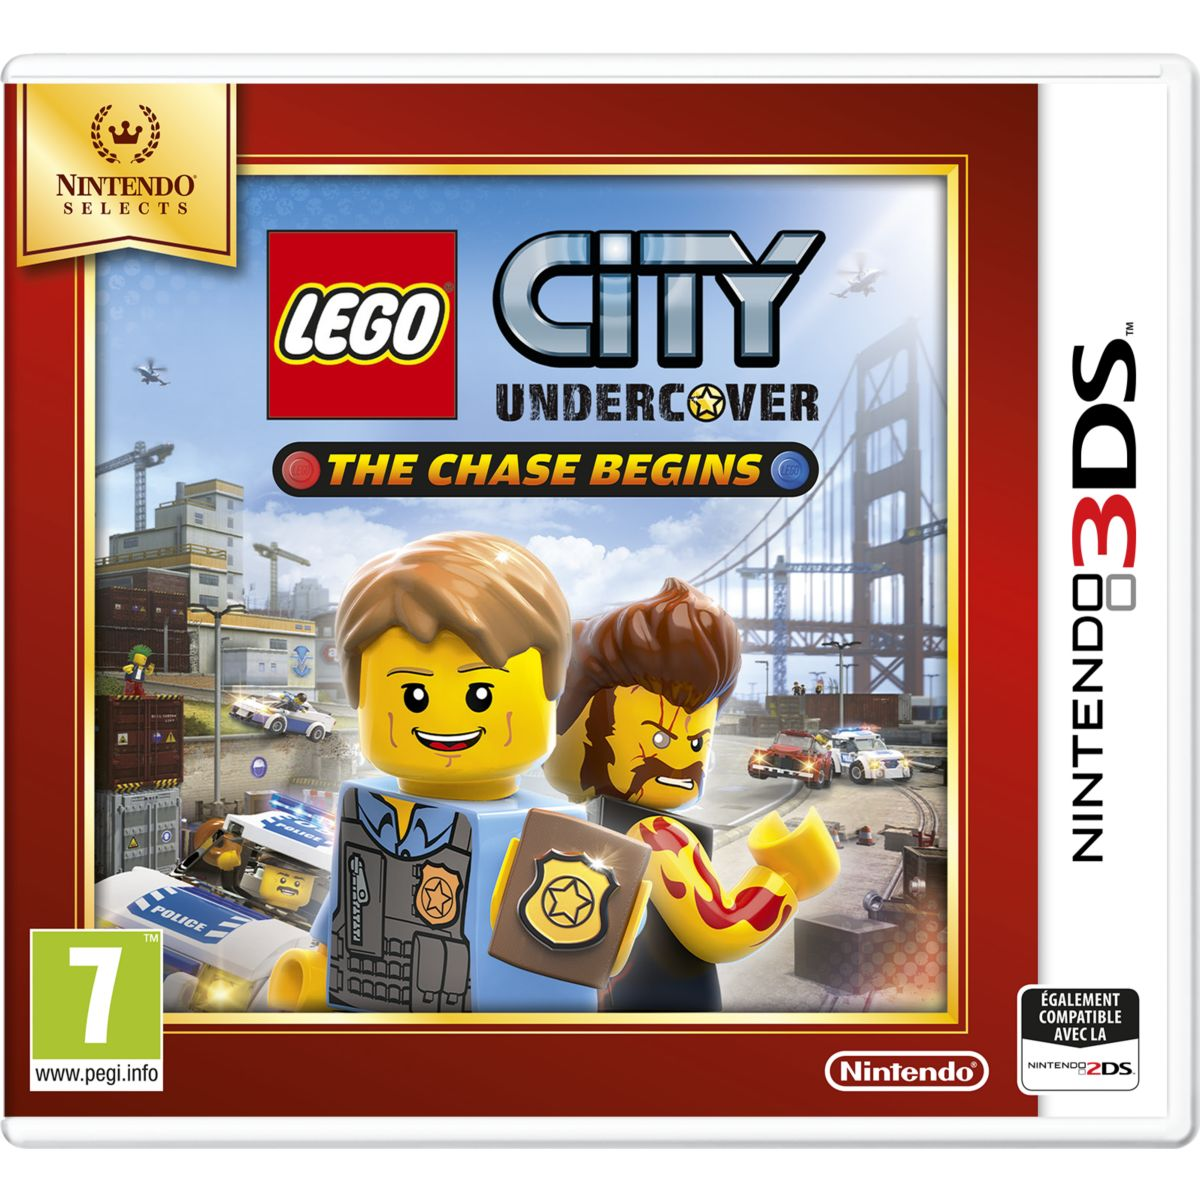 Jeu 3DS NINTENDO Lego City Undercover The Chase Begins Selects